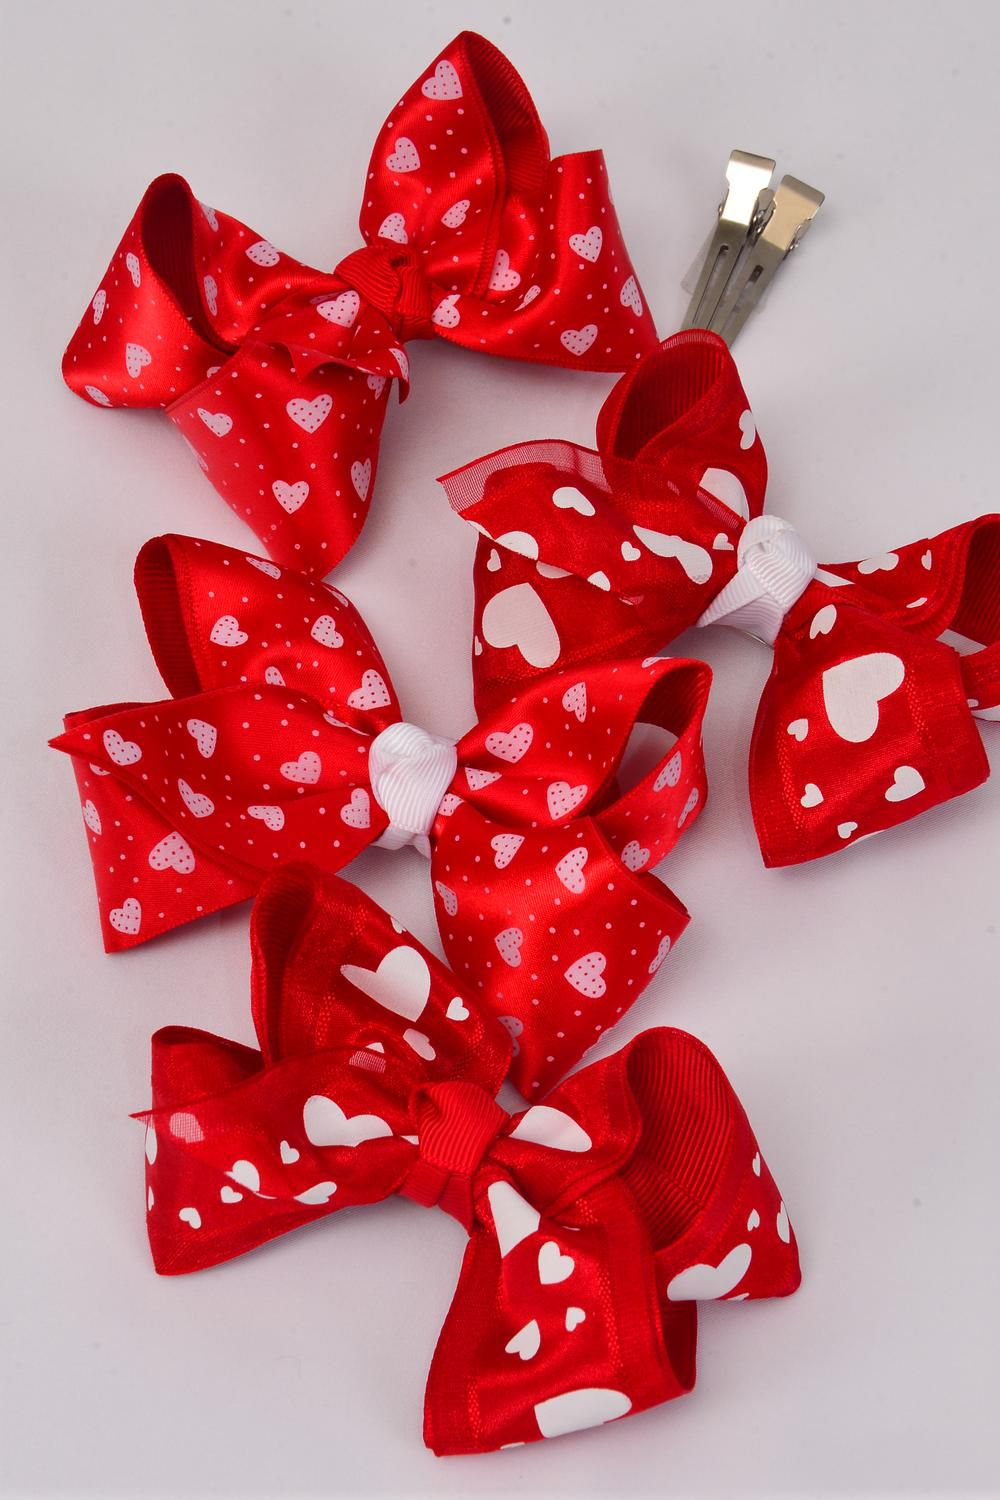 Wholesale Western Jewelry Supplies Hair Bow Large Valentines Bow Tie Double Grosgrain Satin